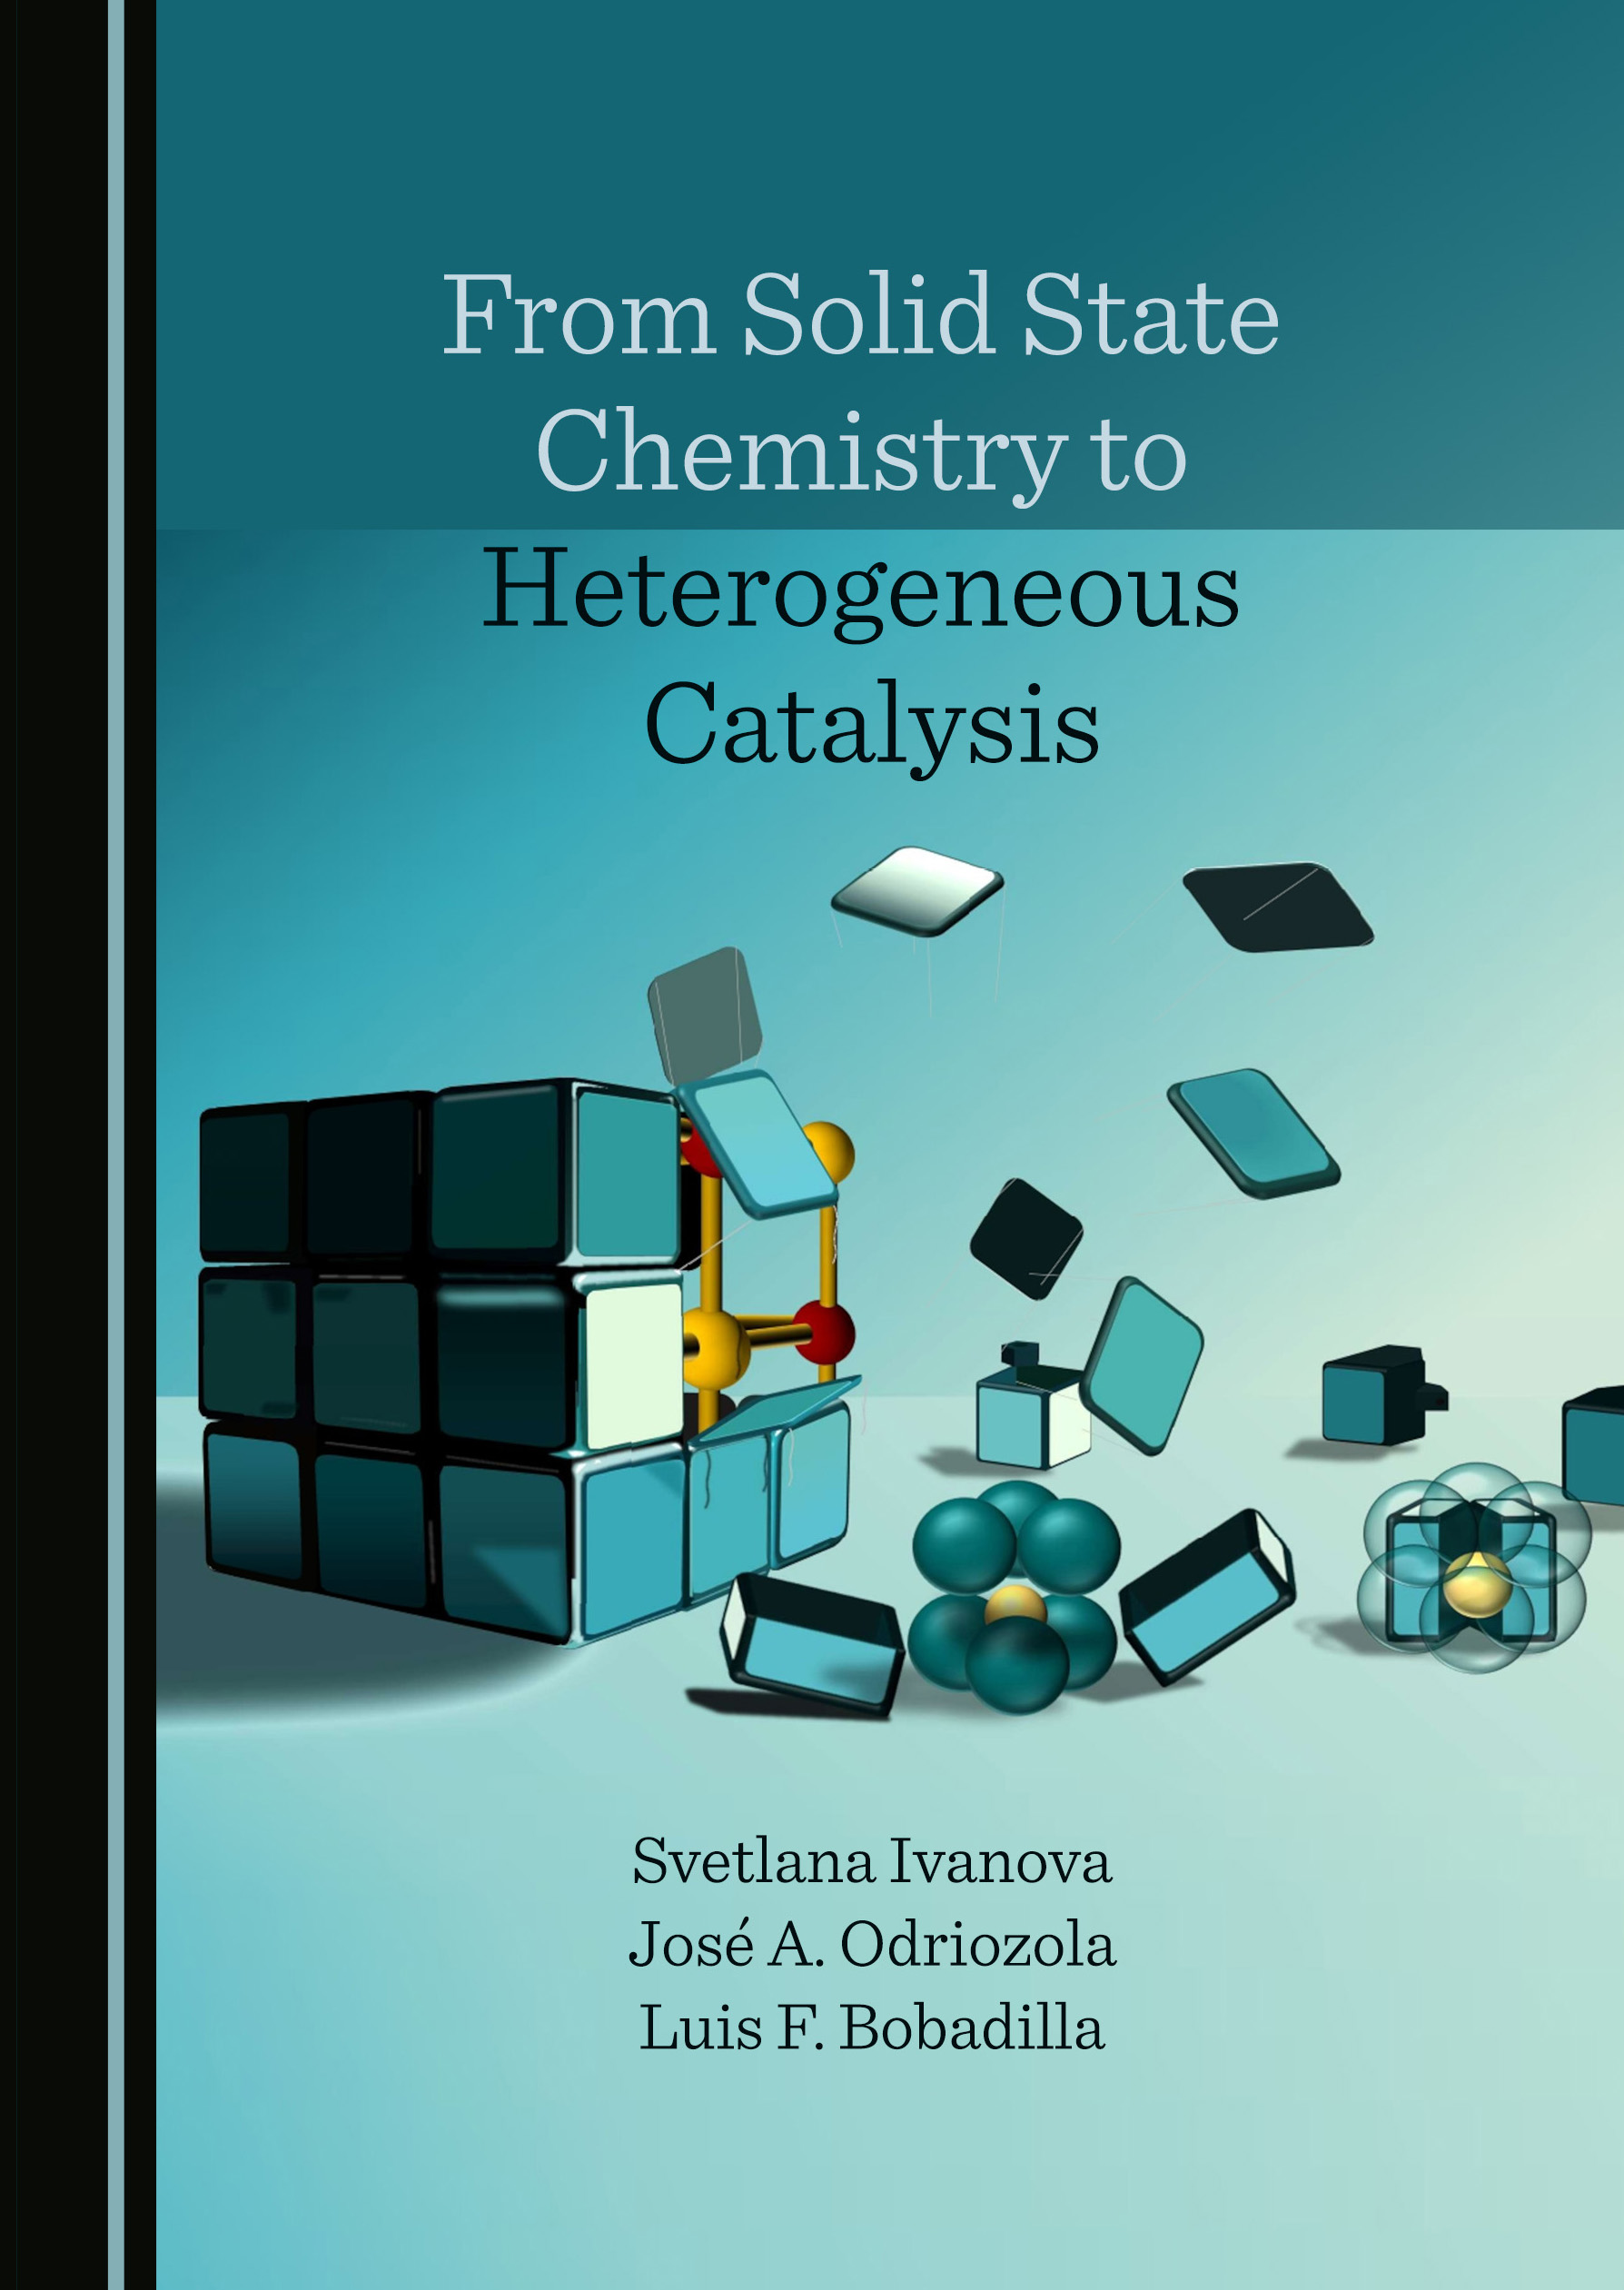 From Solid State Chemistry to Heterogeneous Catalysis